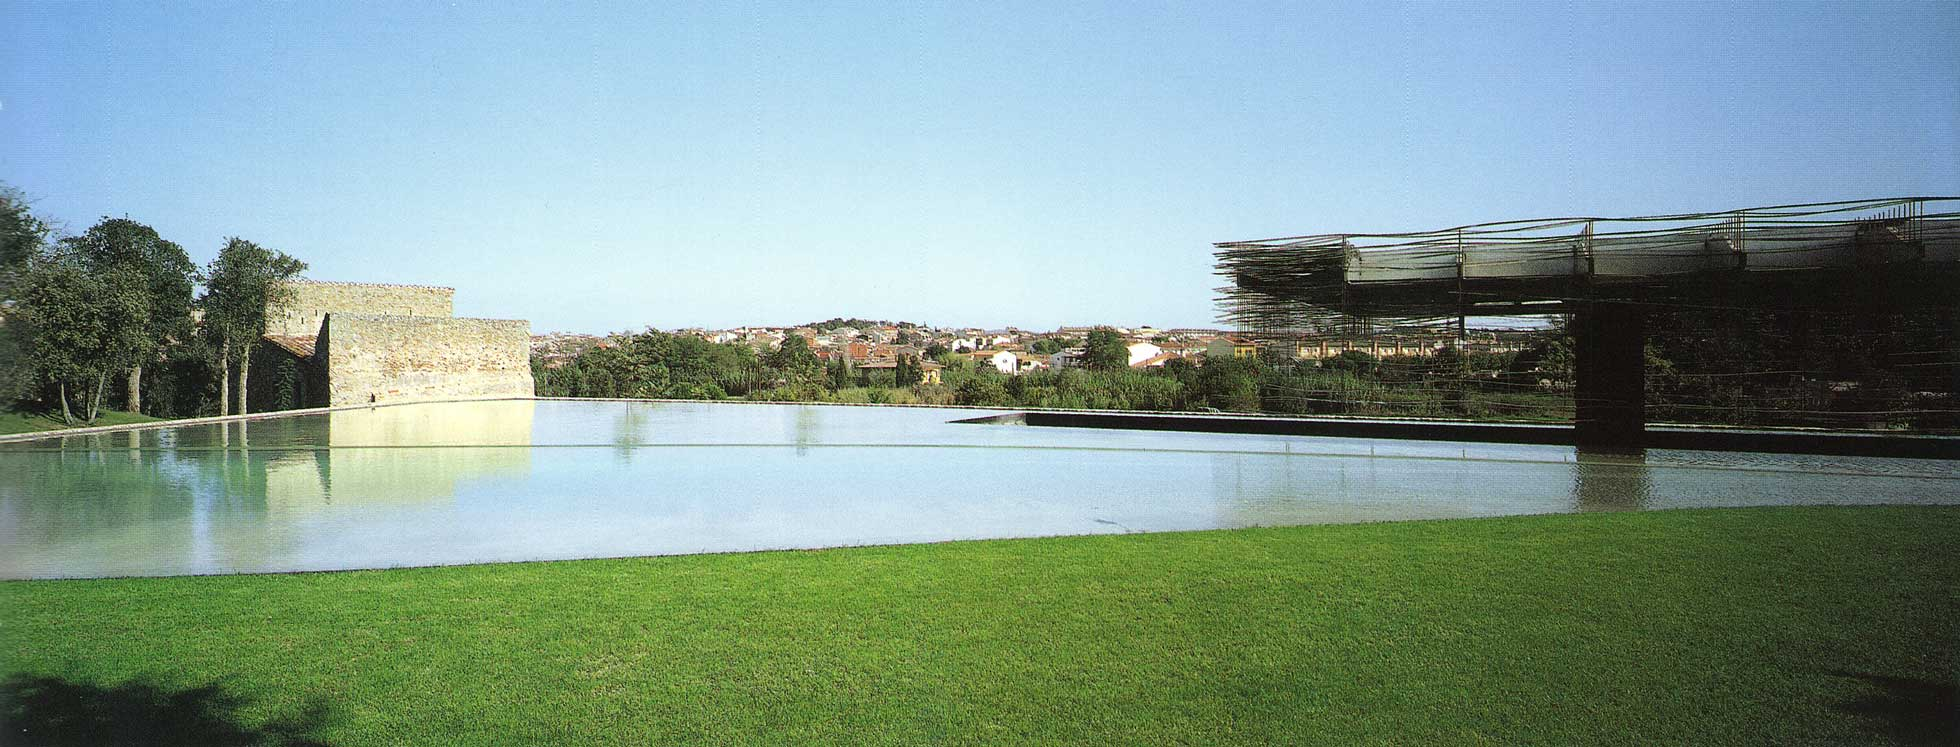 Pavilion on the lake Llagostera